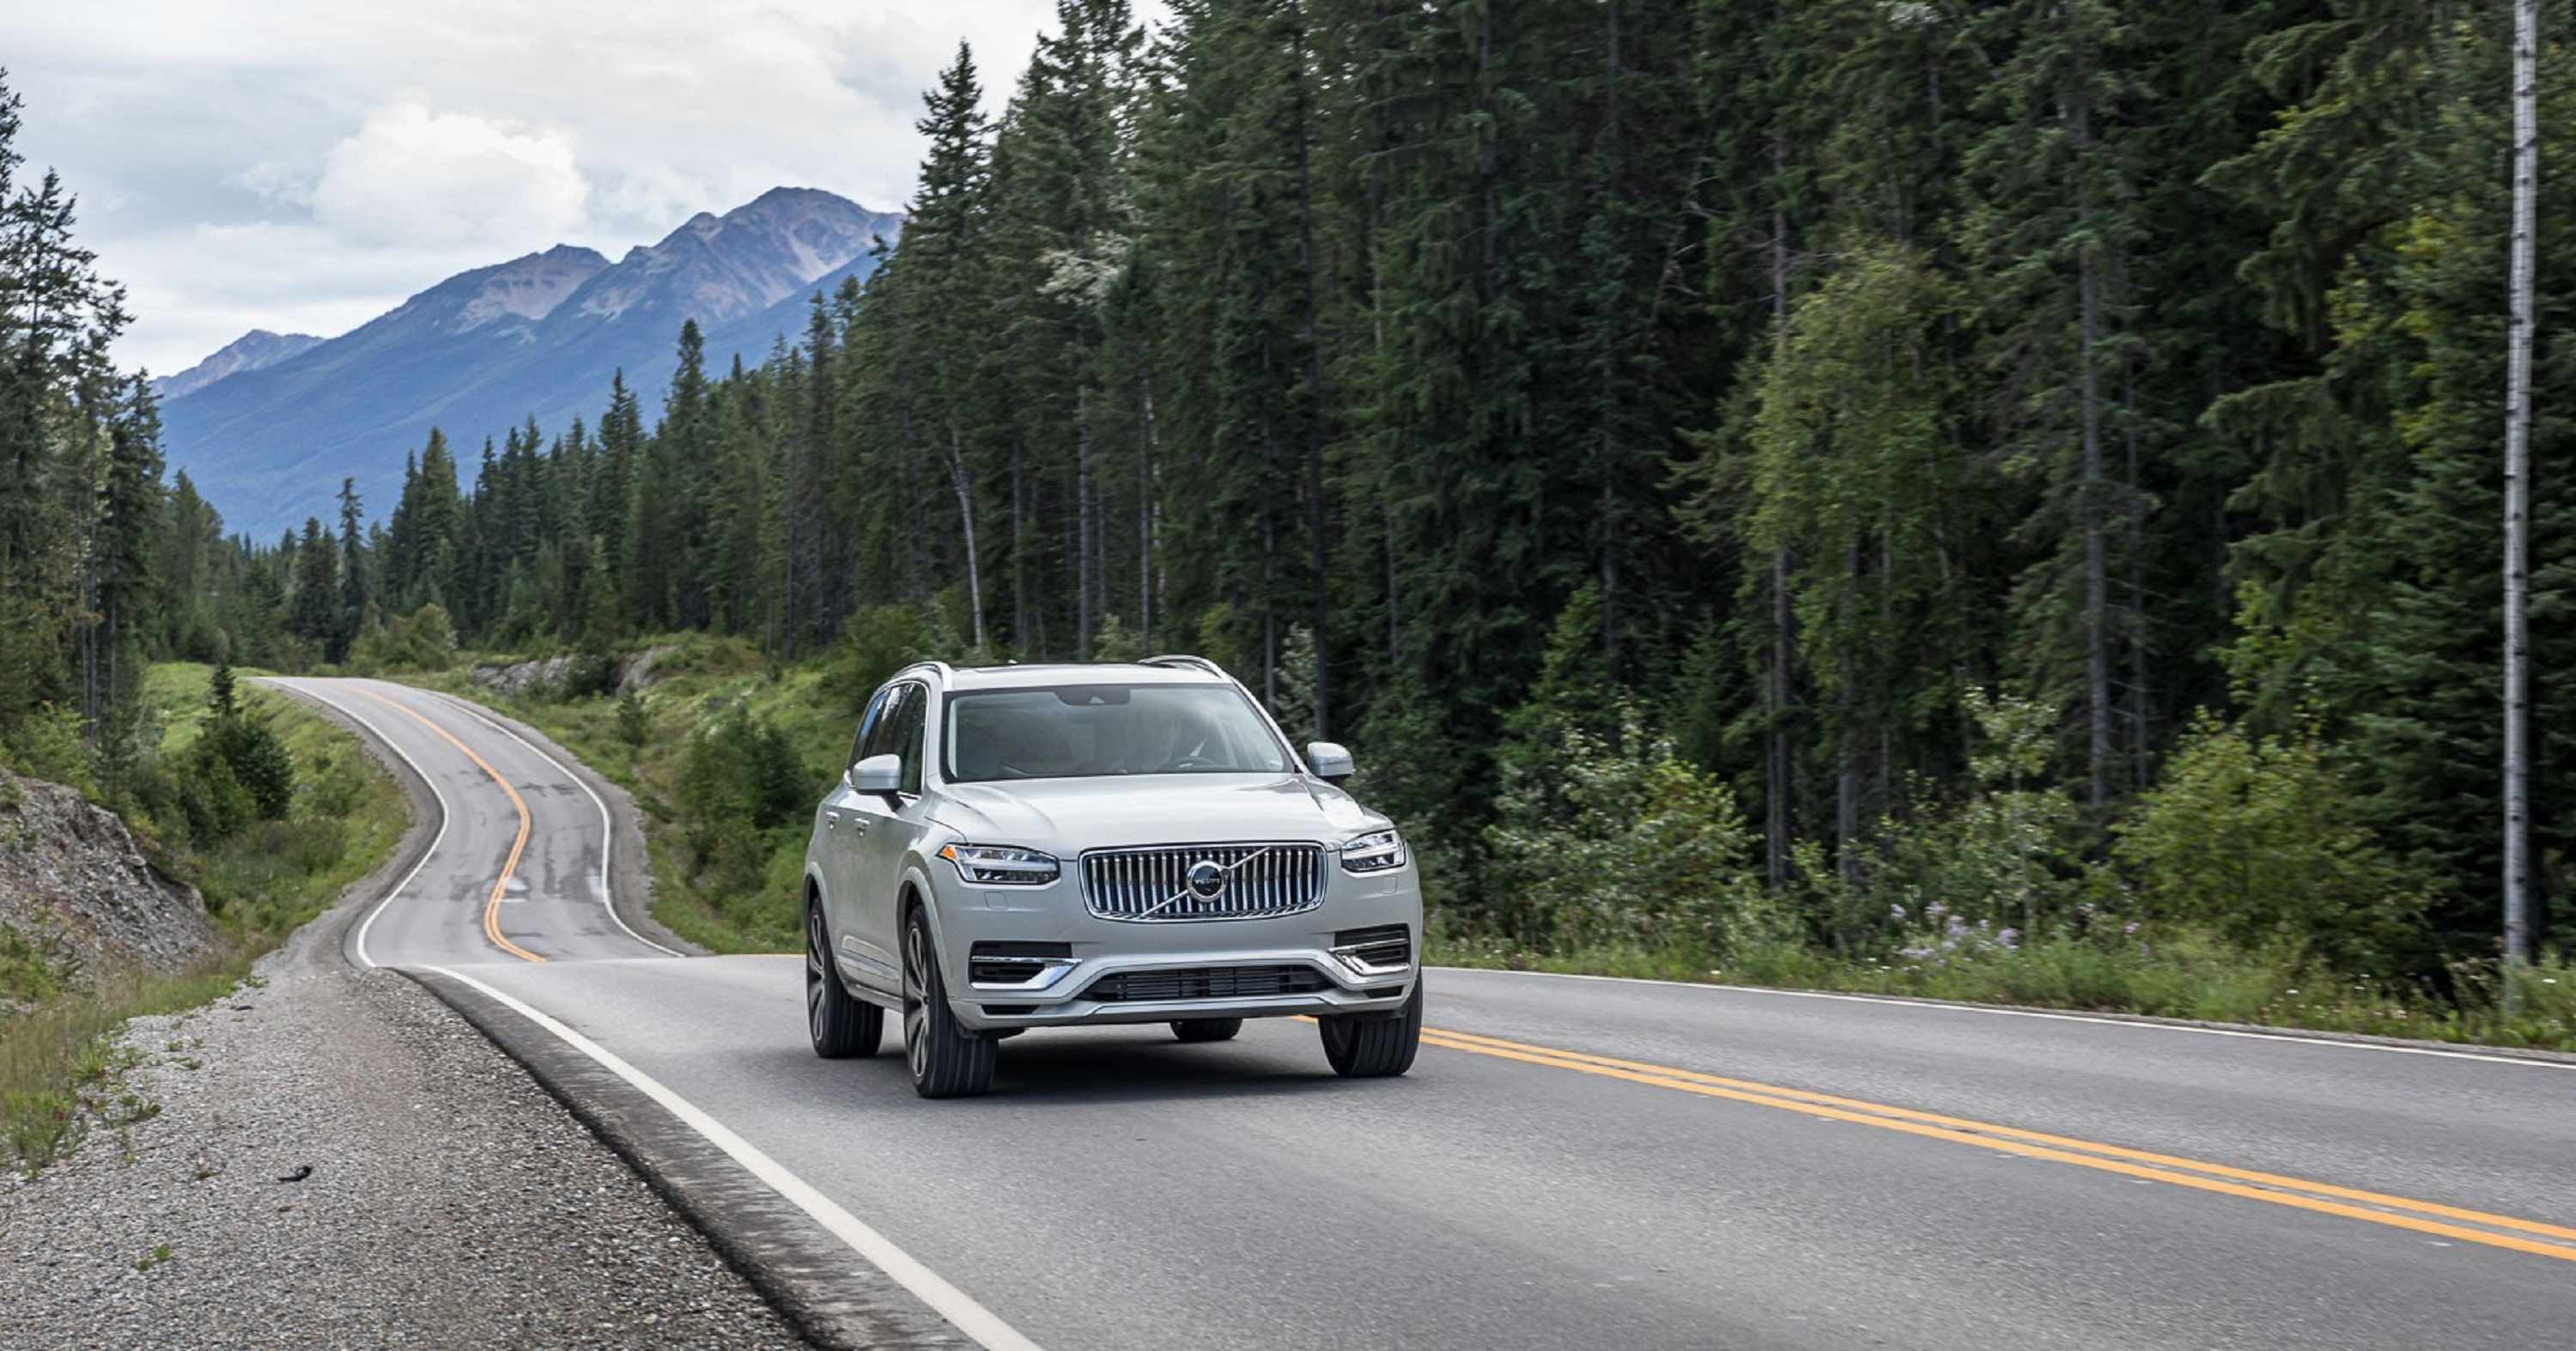 Manufacturer photo: The XC90 is Volvo's flagship SUV.It carries the proud and confident face of Volvo's design language, along with classic Volvo styling cues